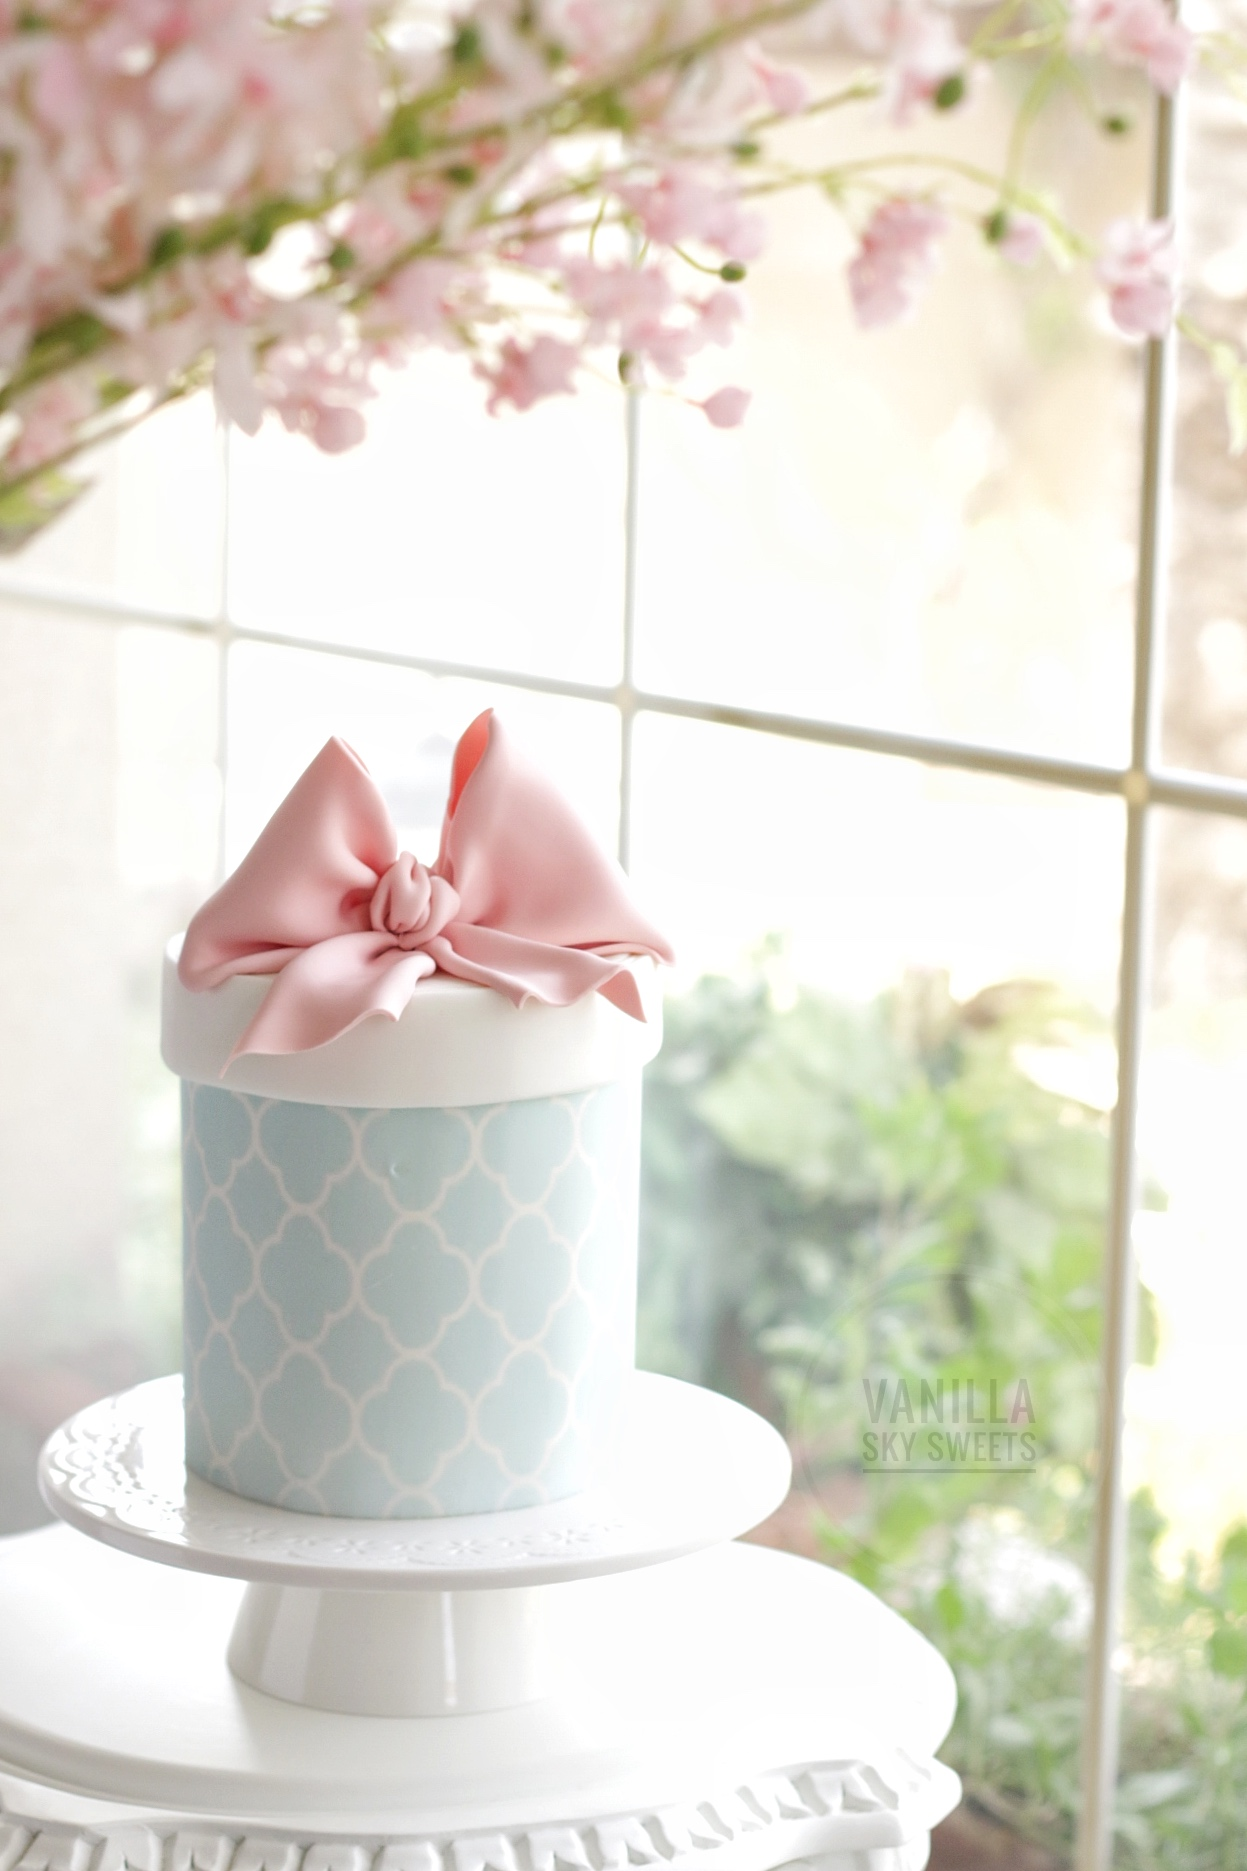 Light blue and white fondant gift box cake with pink bow on top